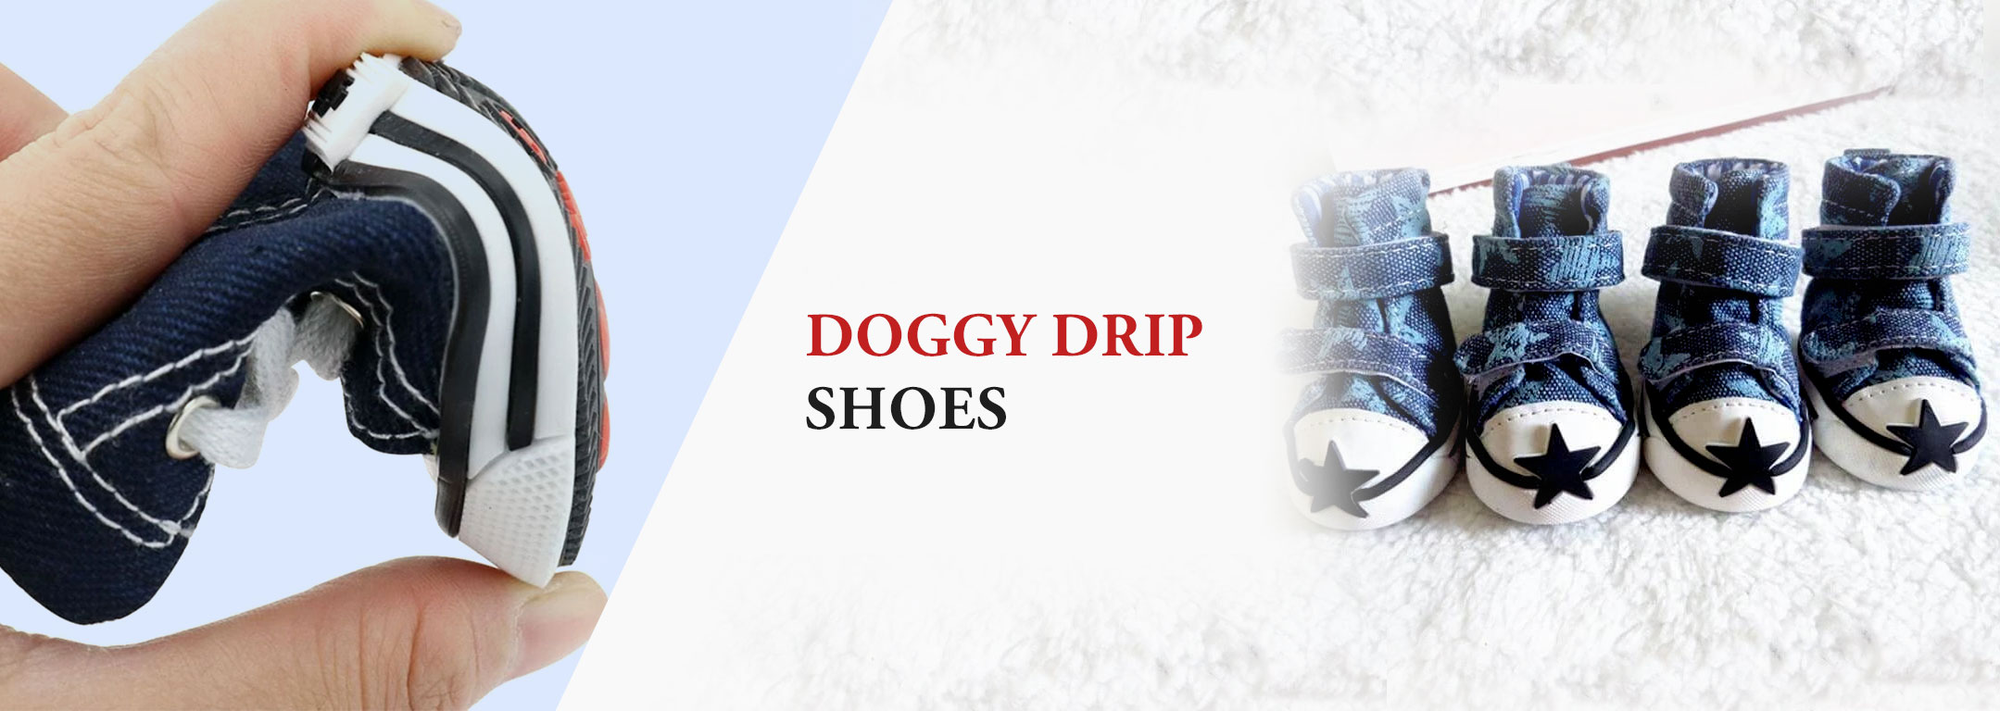 Doggy Drip Shoes